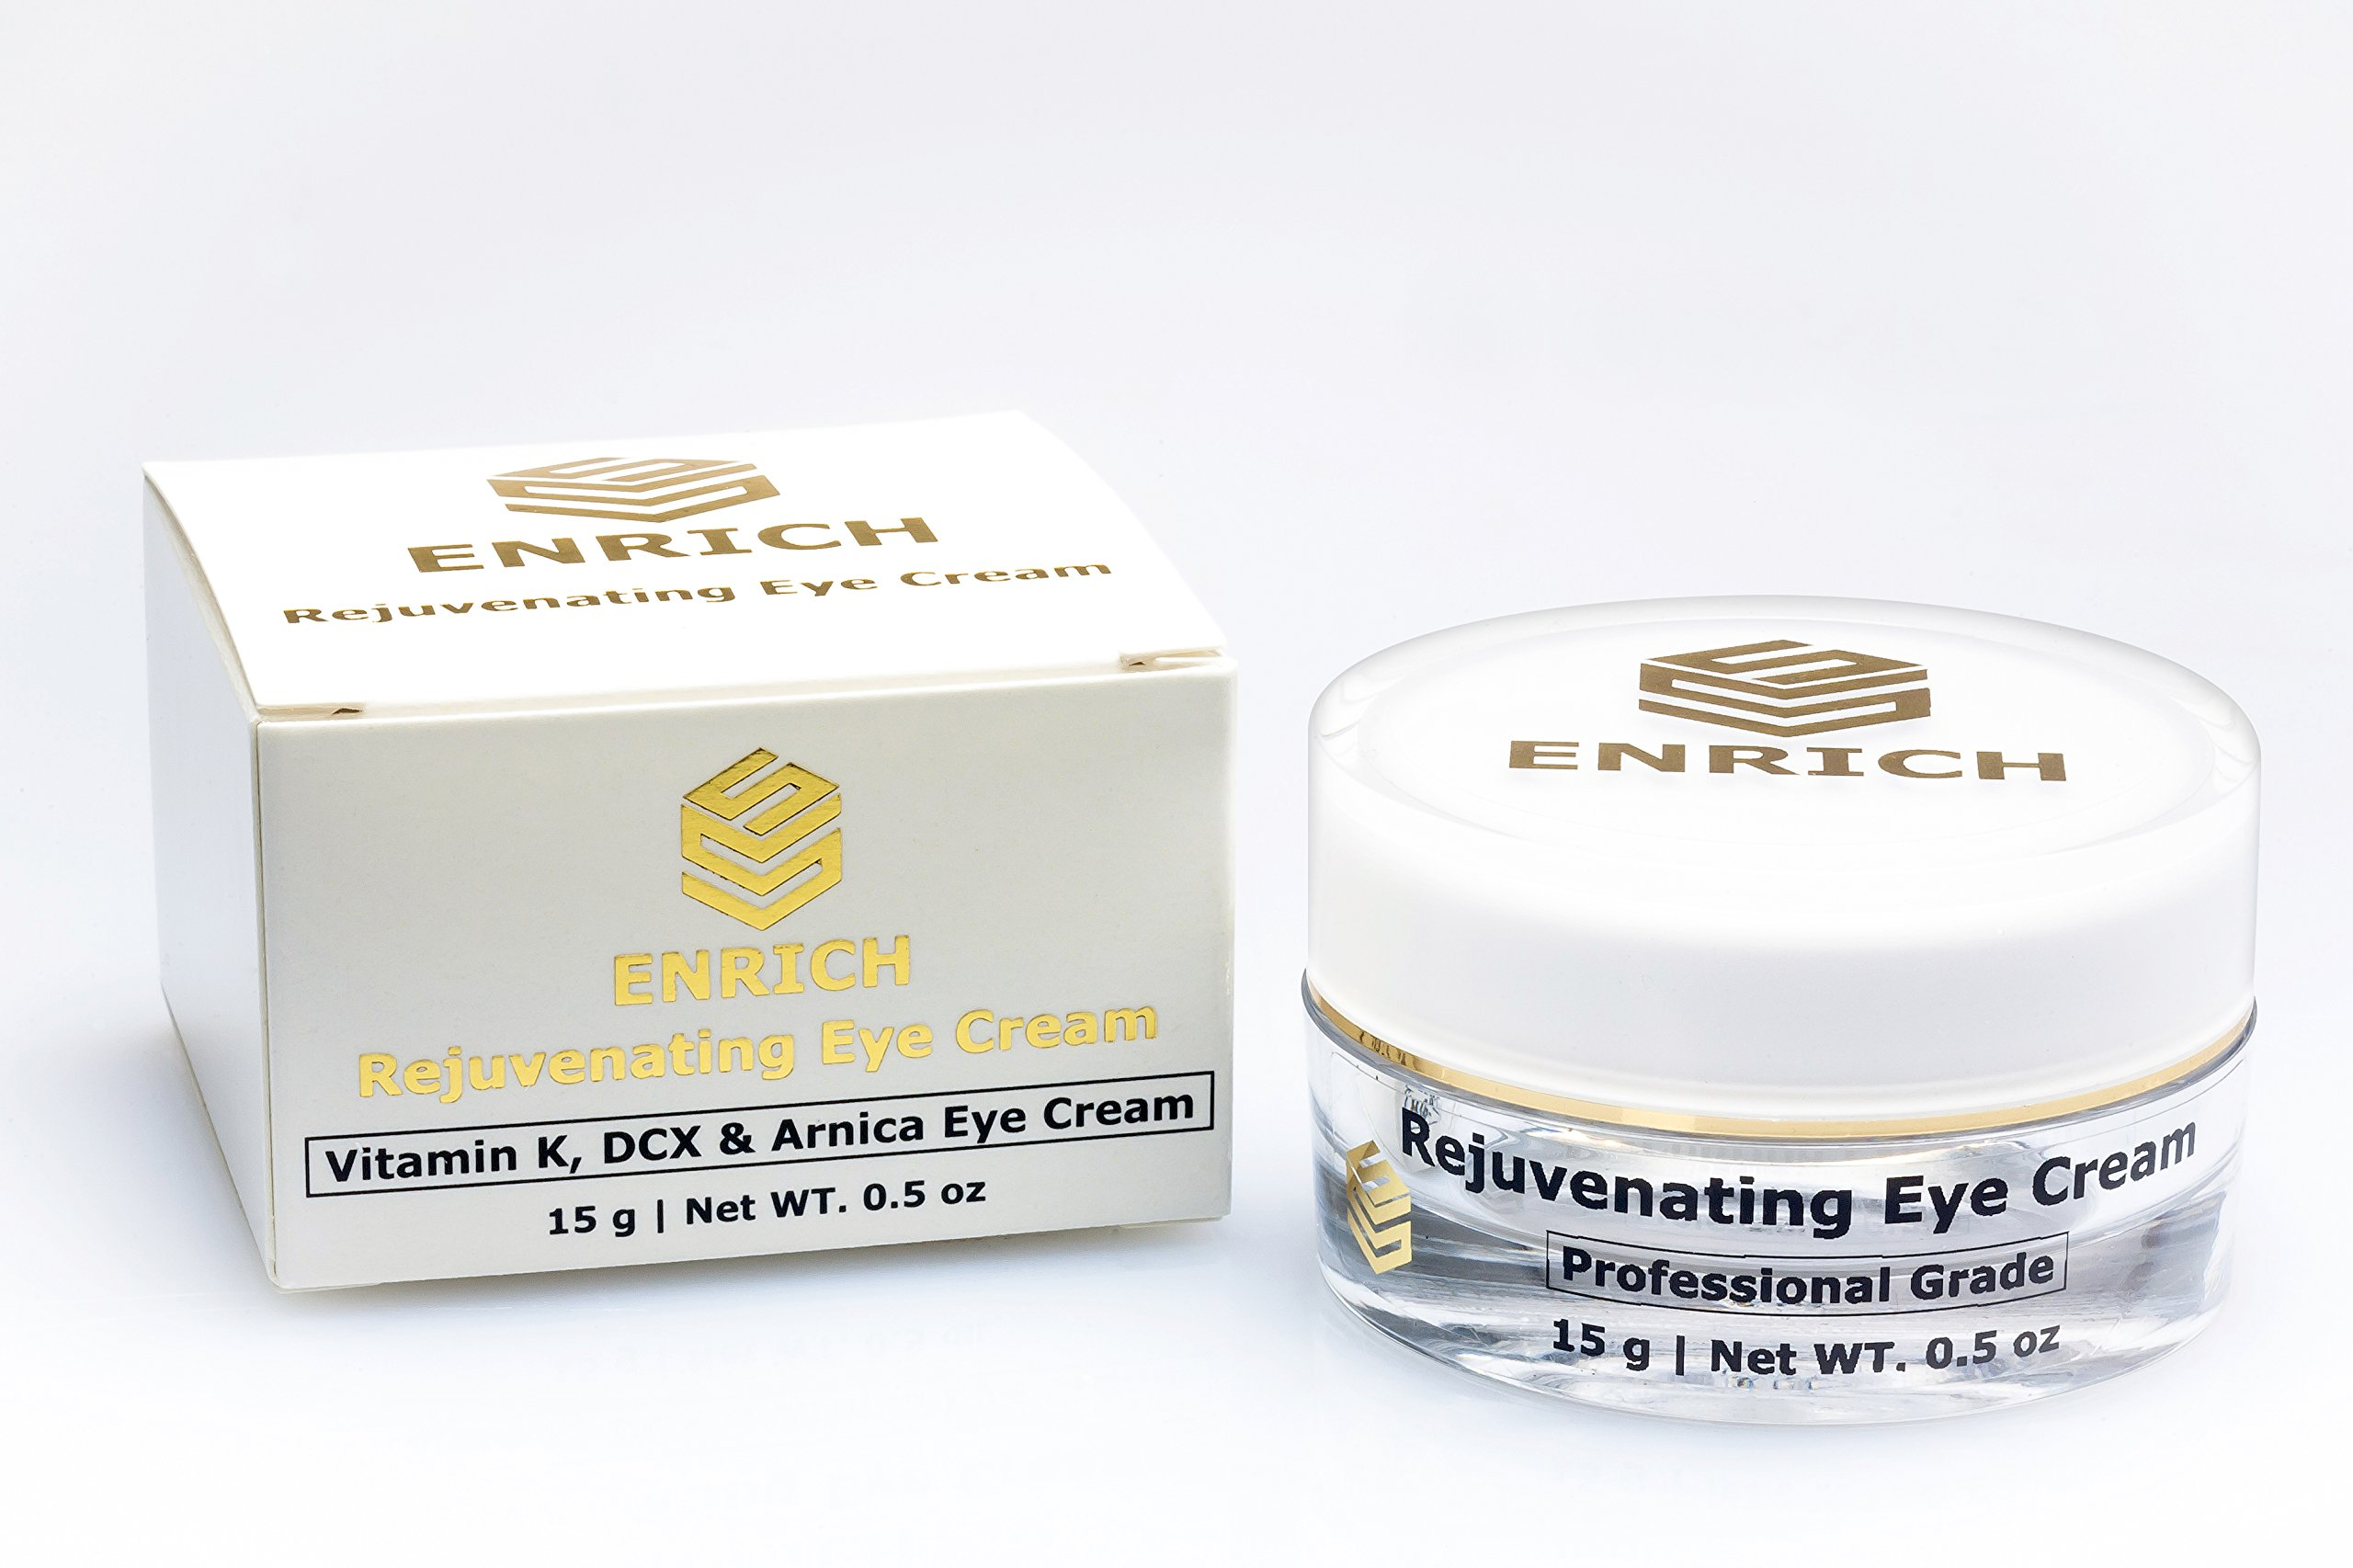 Best Premium Rejuvenating Anti-Aging Eye Cream with Hyaluronic Acid, Vitamin K, DCX and Arnica for correcting dark circles, puffiness, bags & wrinkles. Eye treatment for Women and Men